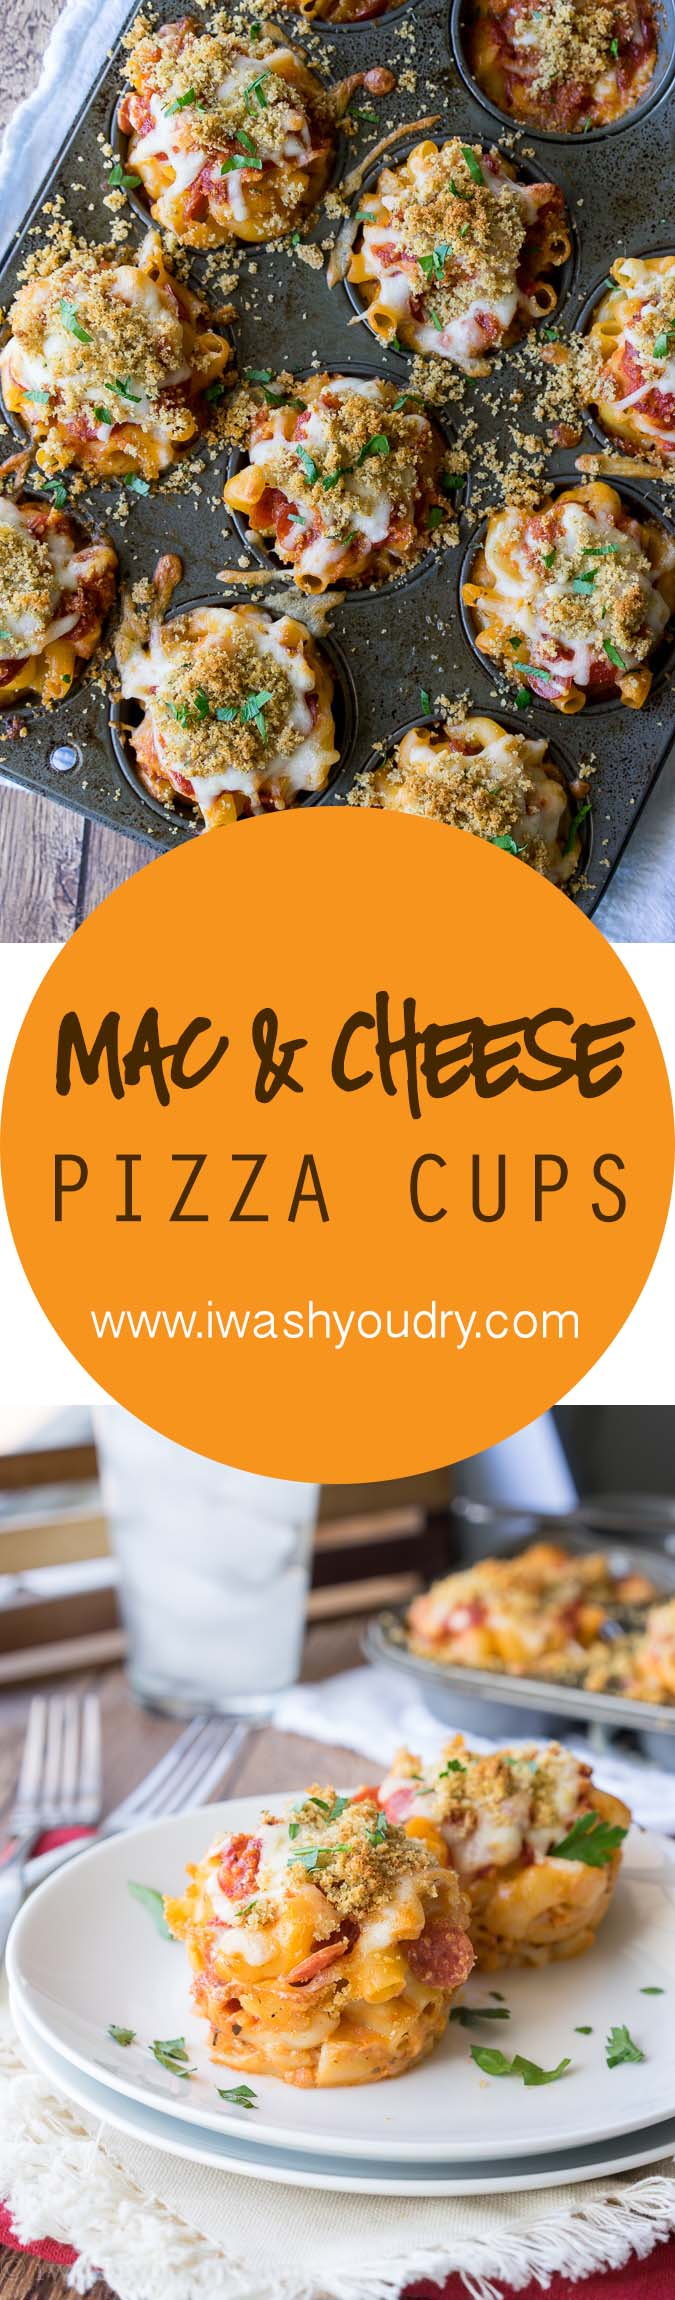 Super Easy Mac and Cheese Pizza Muffin Cups! My kids totally love these cheesy and saucy cups and they're great for game-day too!